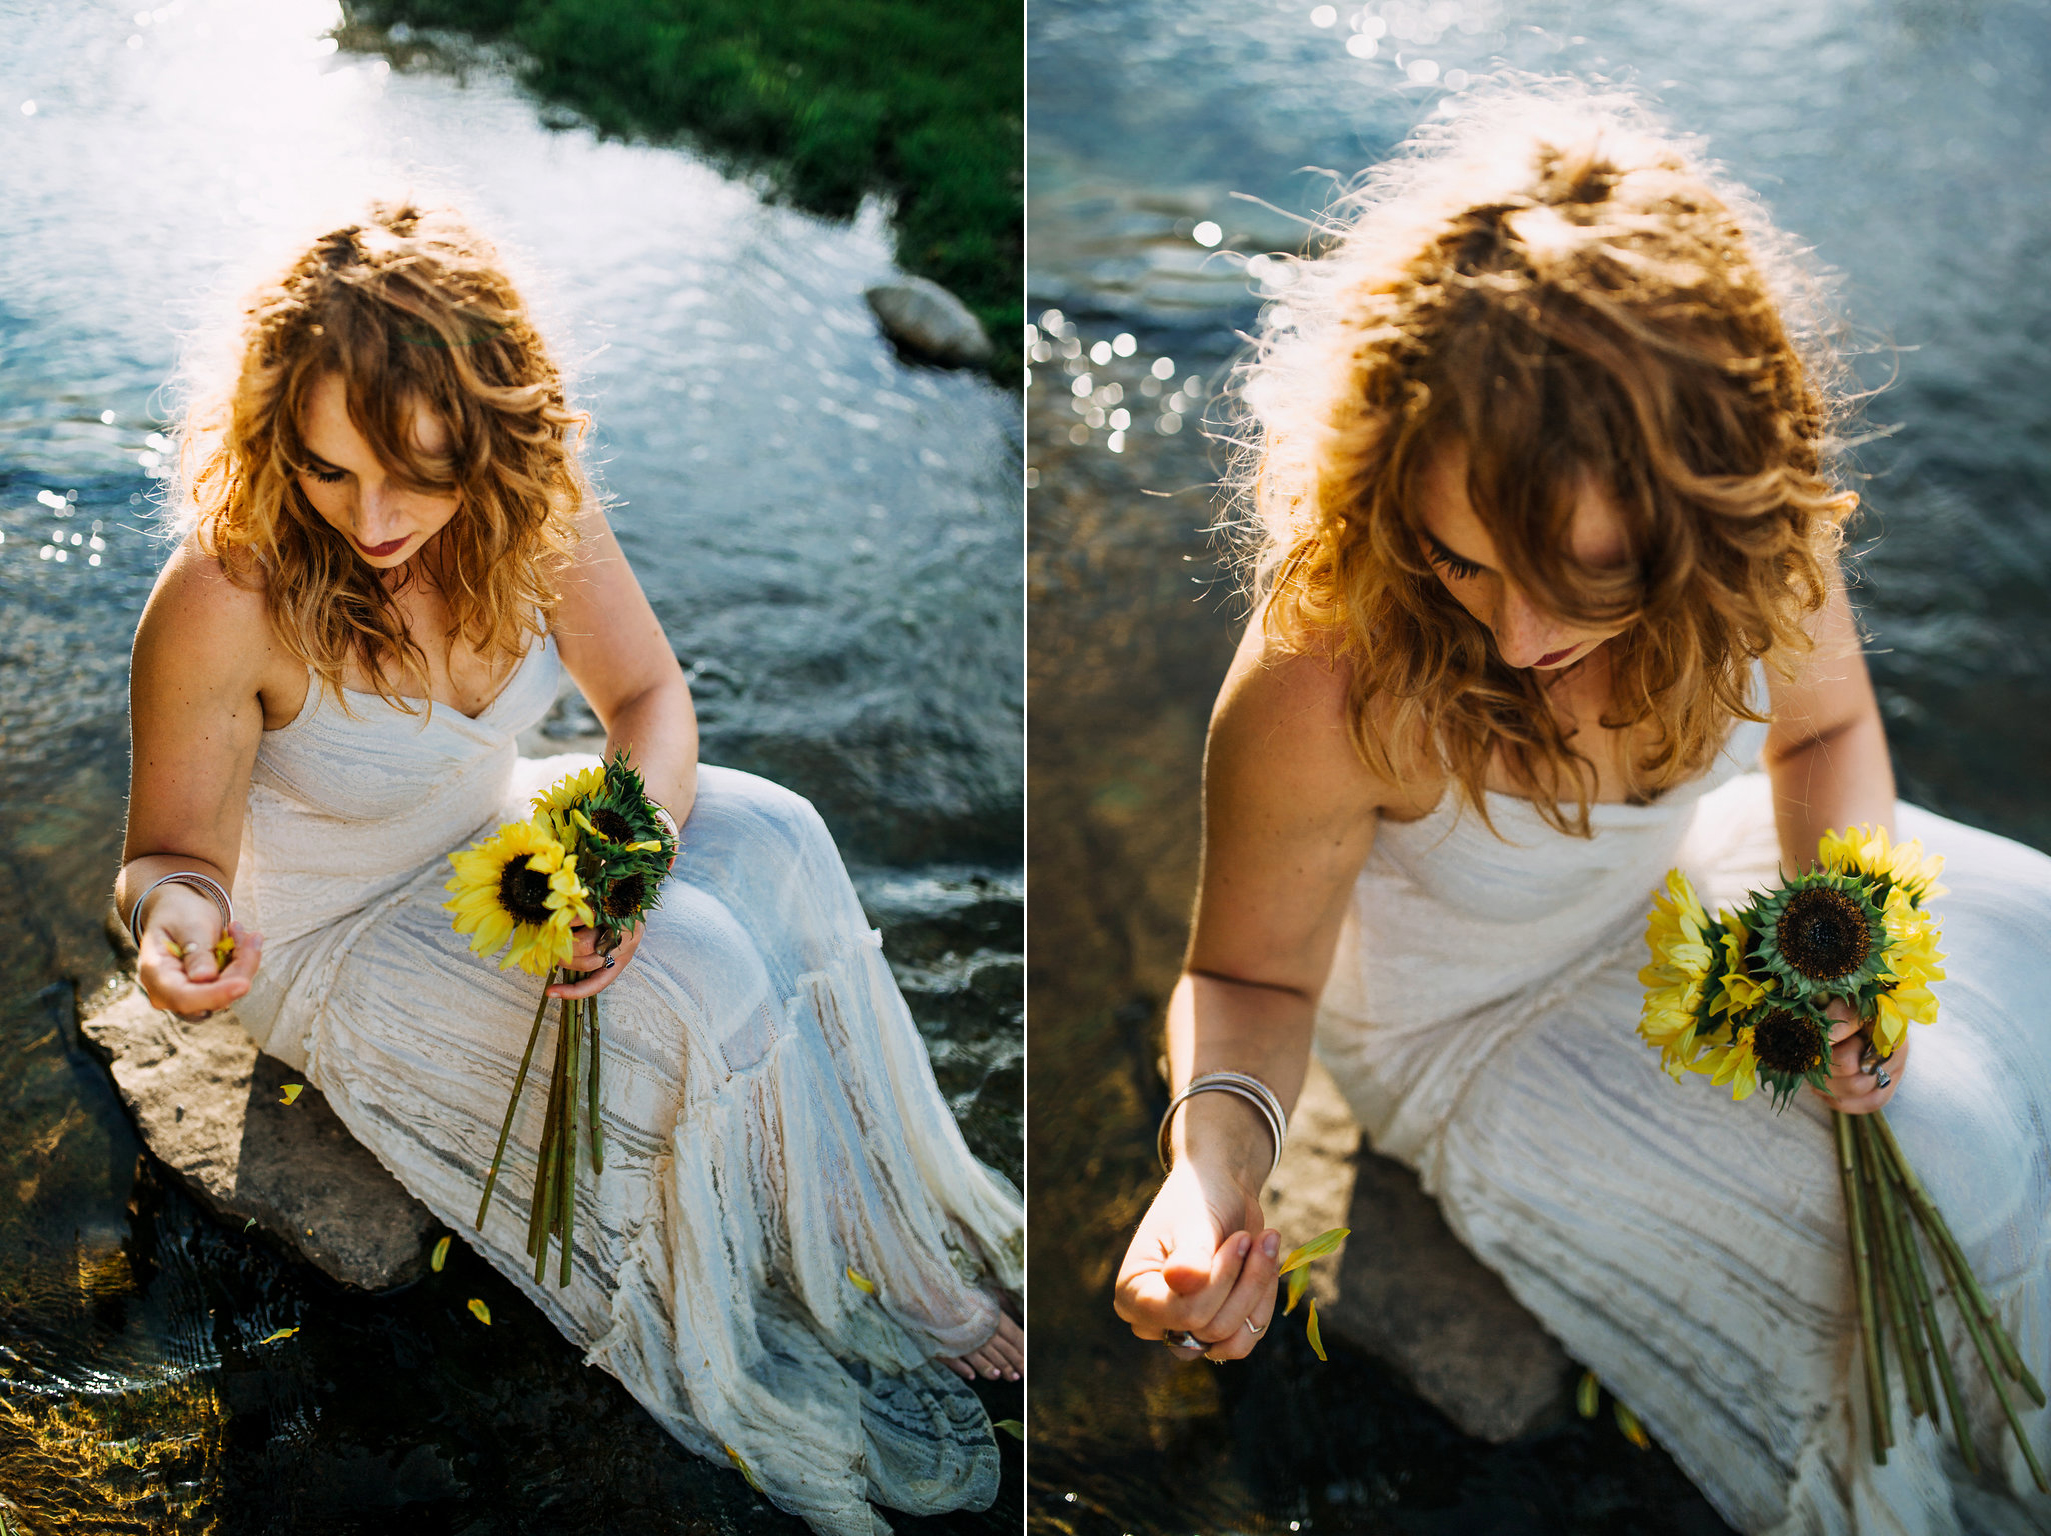 Camille-Joy-Music-Franklin-Tennessee-Photographer-Creek-Berry-Farms-Senior-Portraits-Water-18